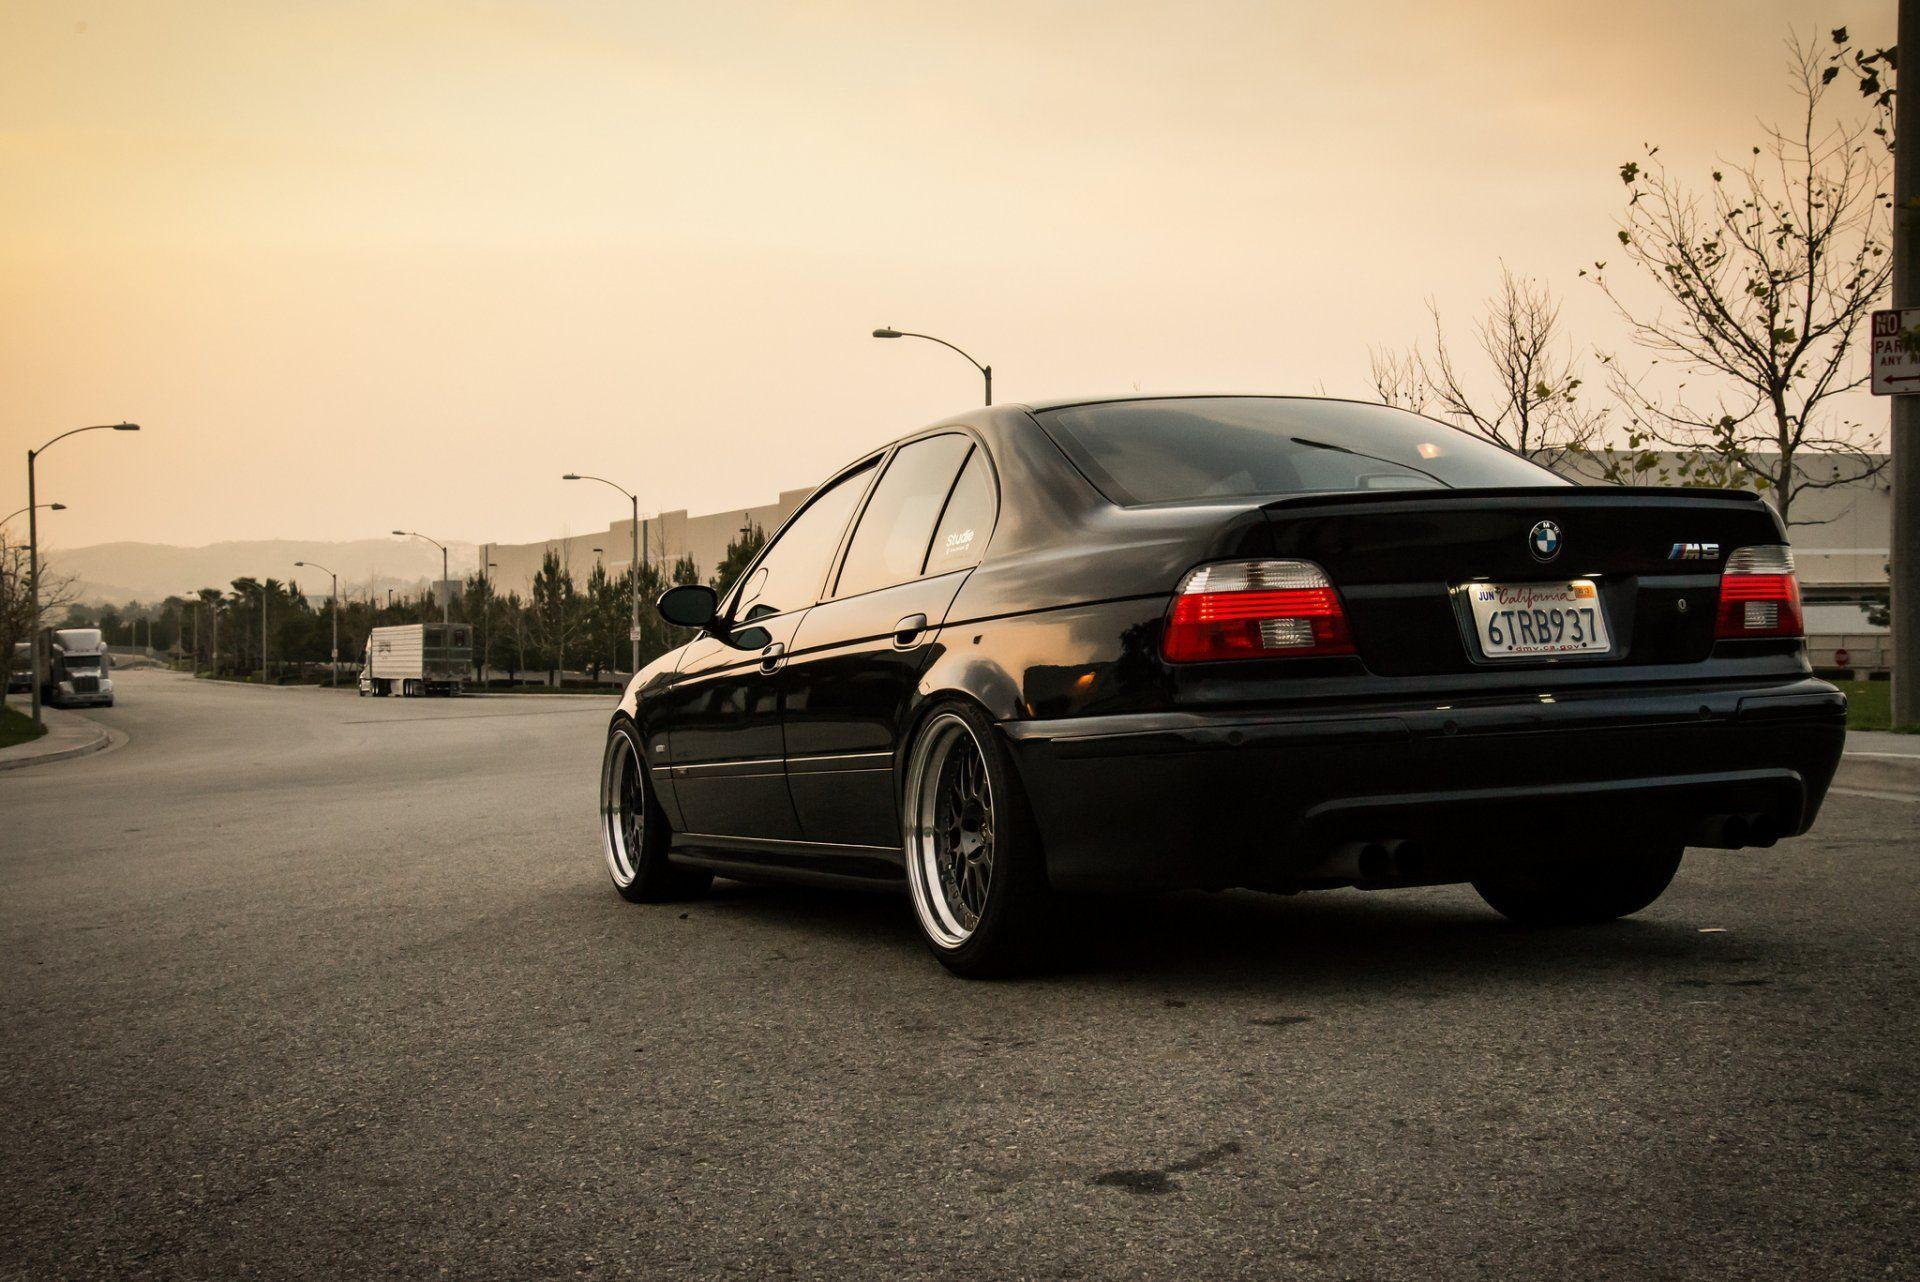 bmw e39 m5 bmw light bbs black tuning stance road HD wallpapers